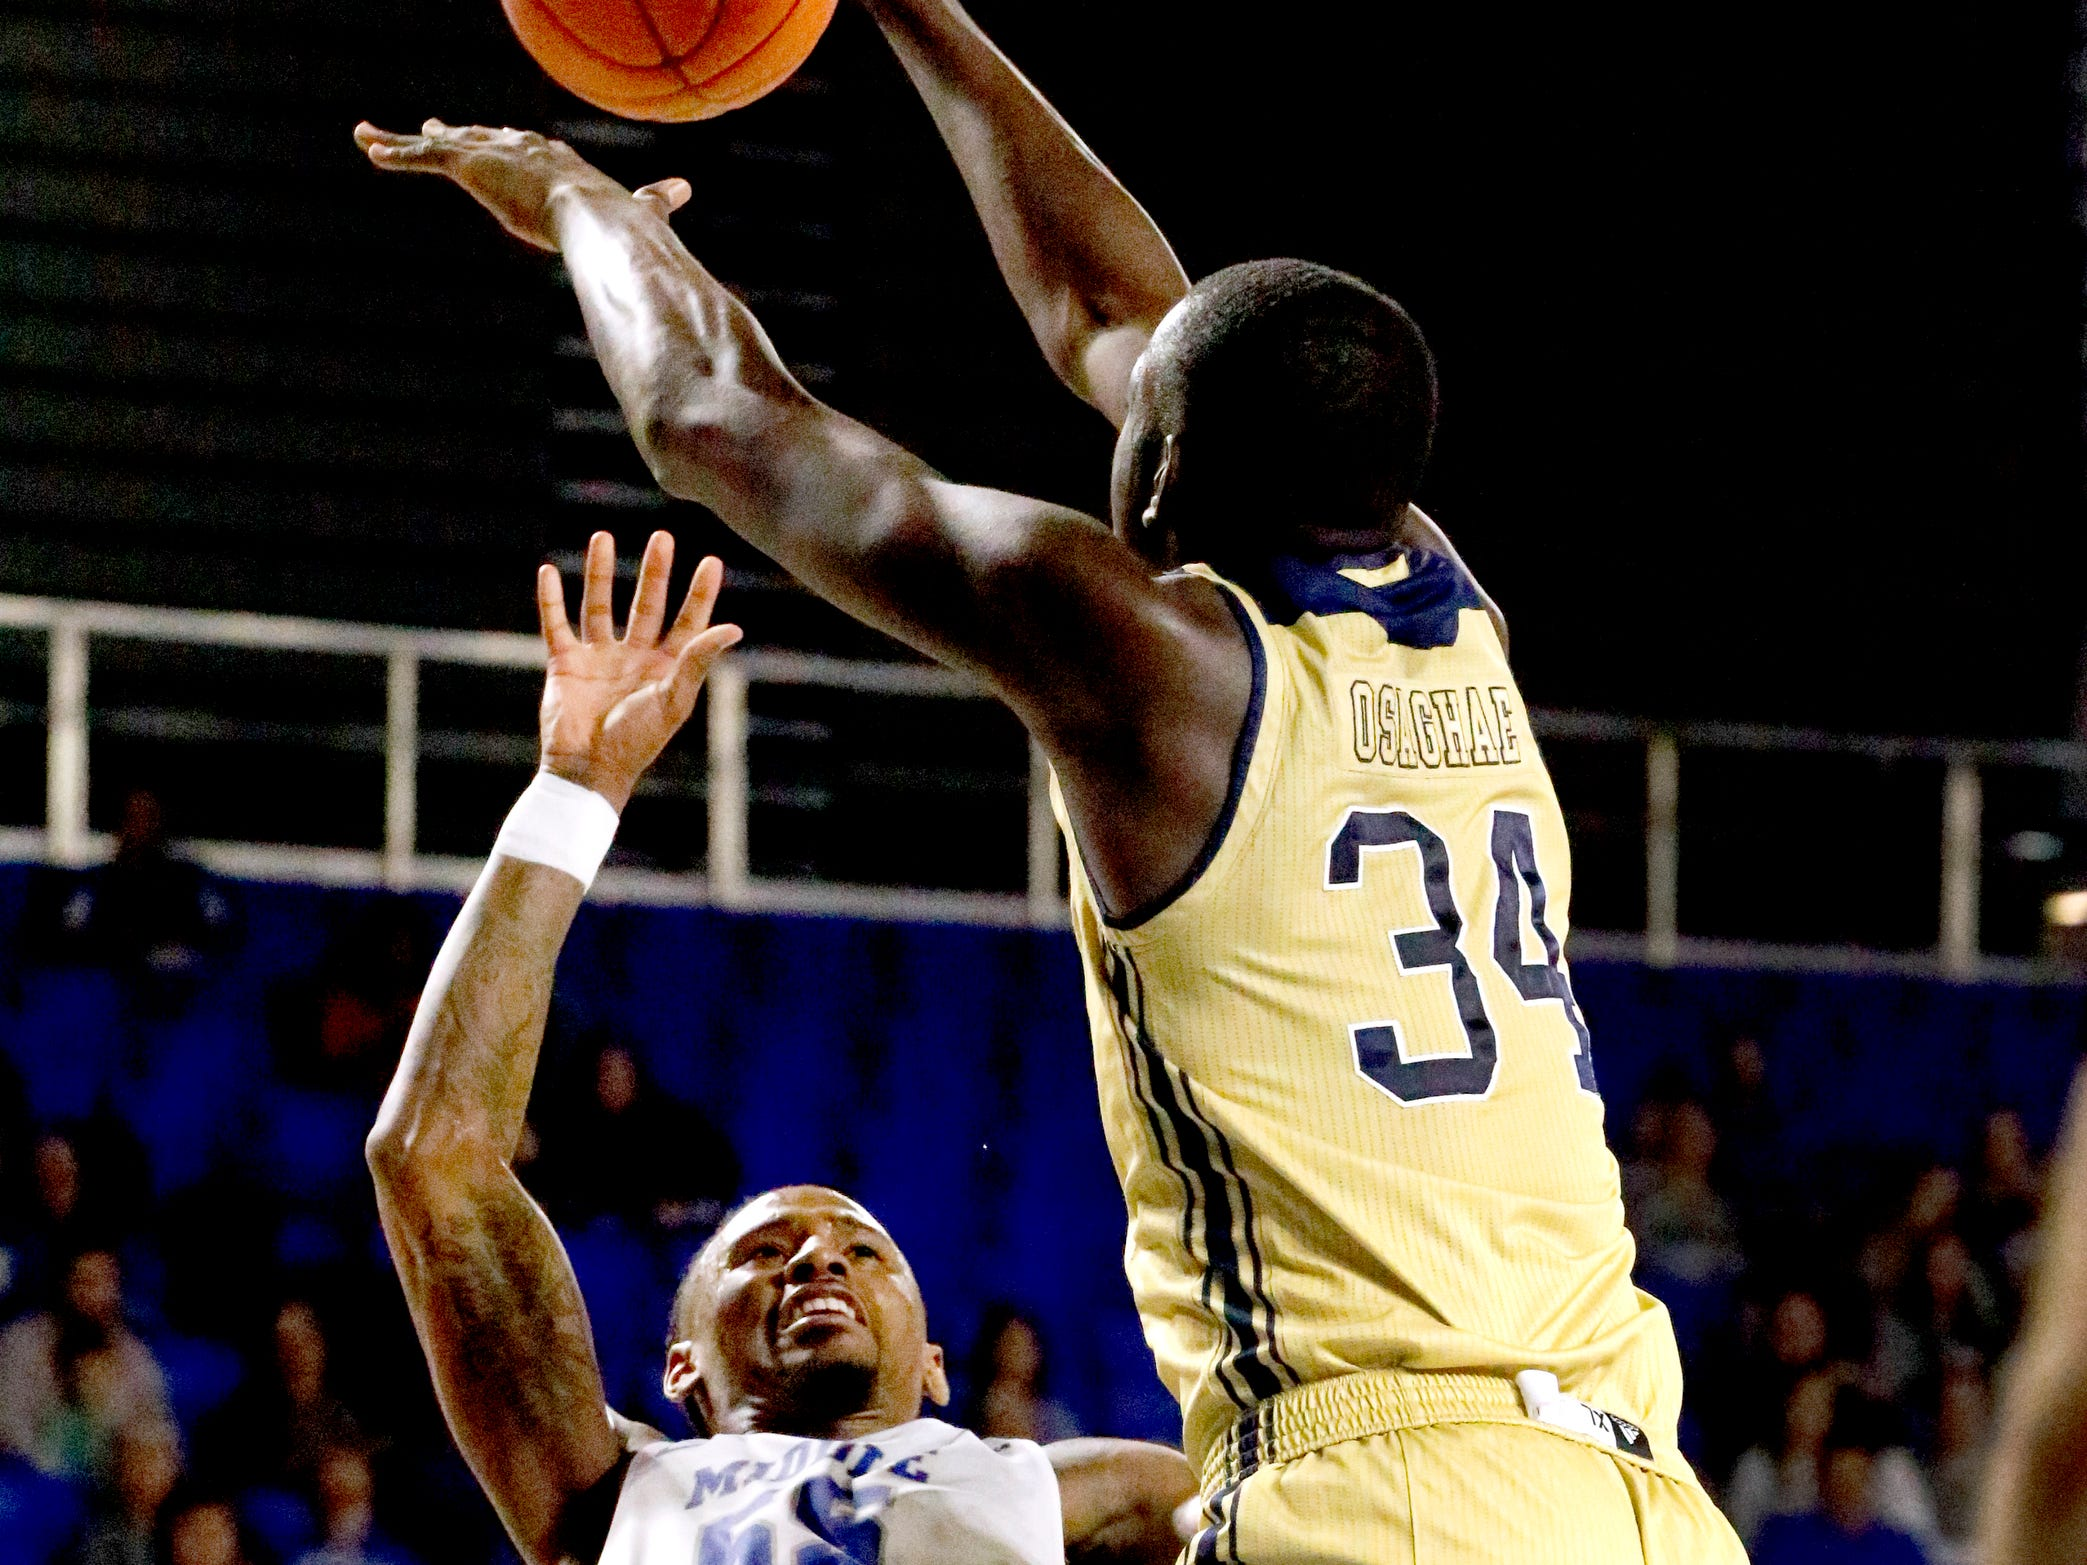 MTSU's guard Antonio Green (55) goes up for a shot as he is fouled by FIU's forward Osasumwen Osaghae (34) on Thursday Jan. 3, 2019, at MTSU.